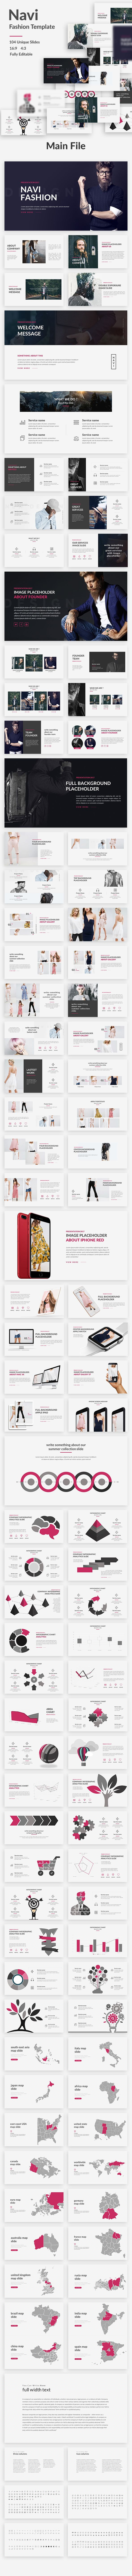 Navi - Fashion Google Slide Template. Download: https://graphicriver.net/item/navi-fashion-google-slide-template/19770283?ref=thanhdesign